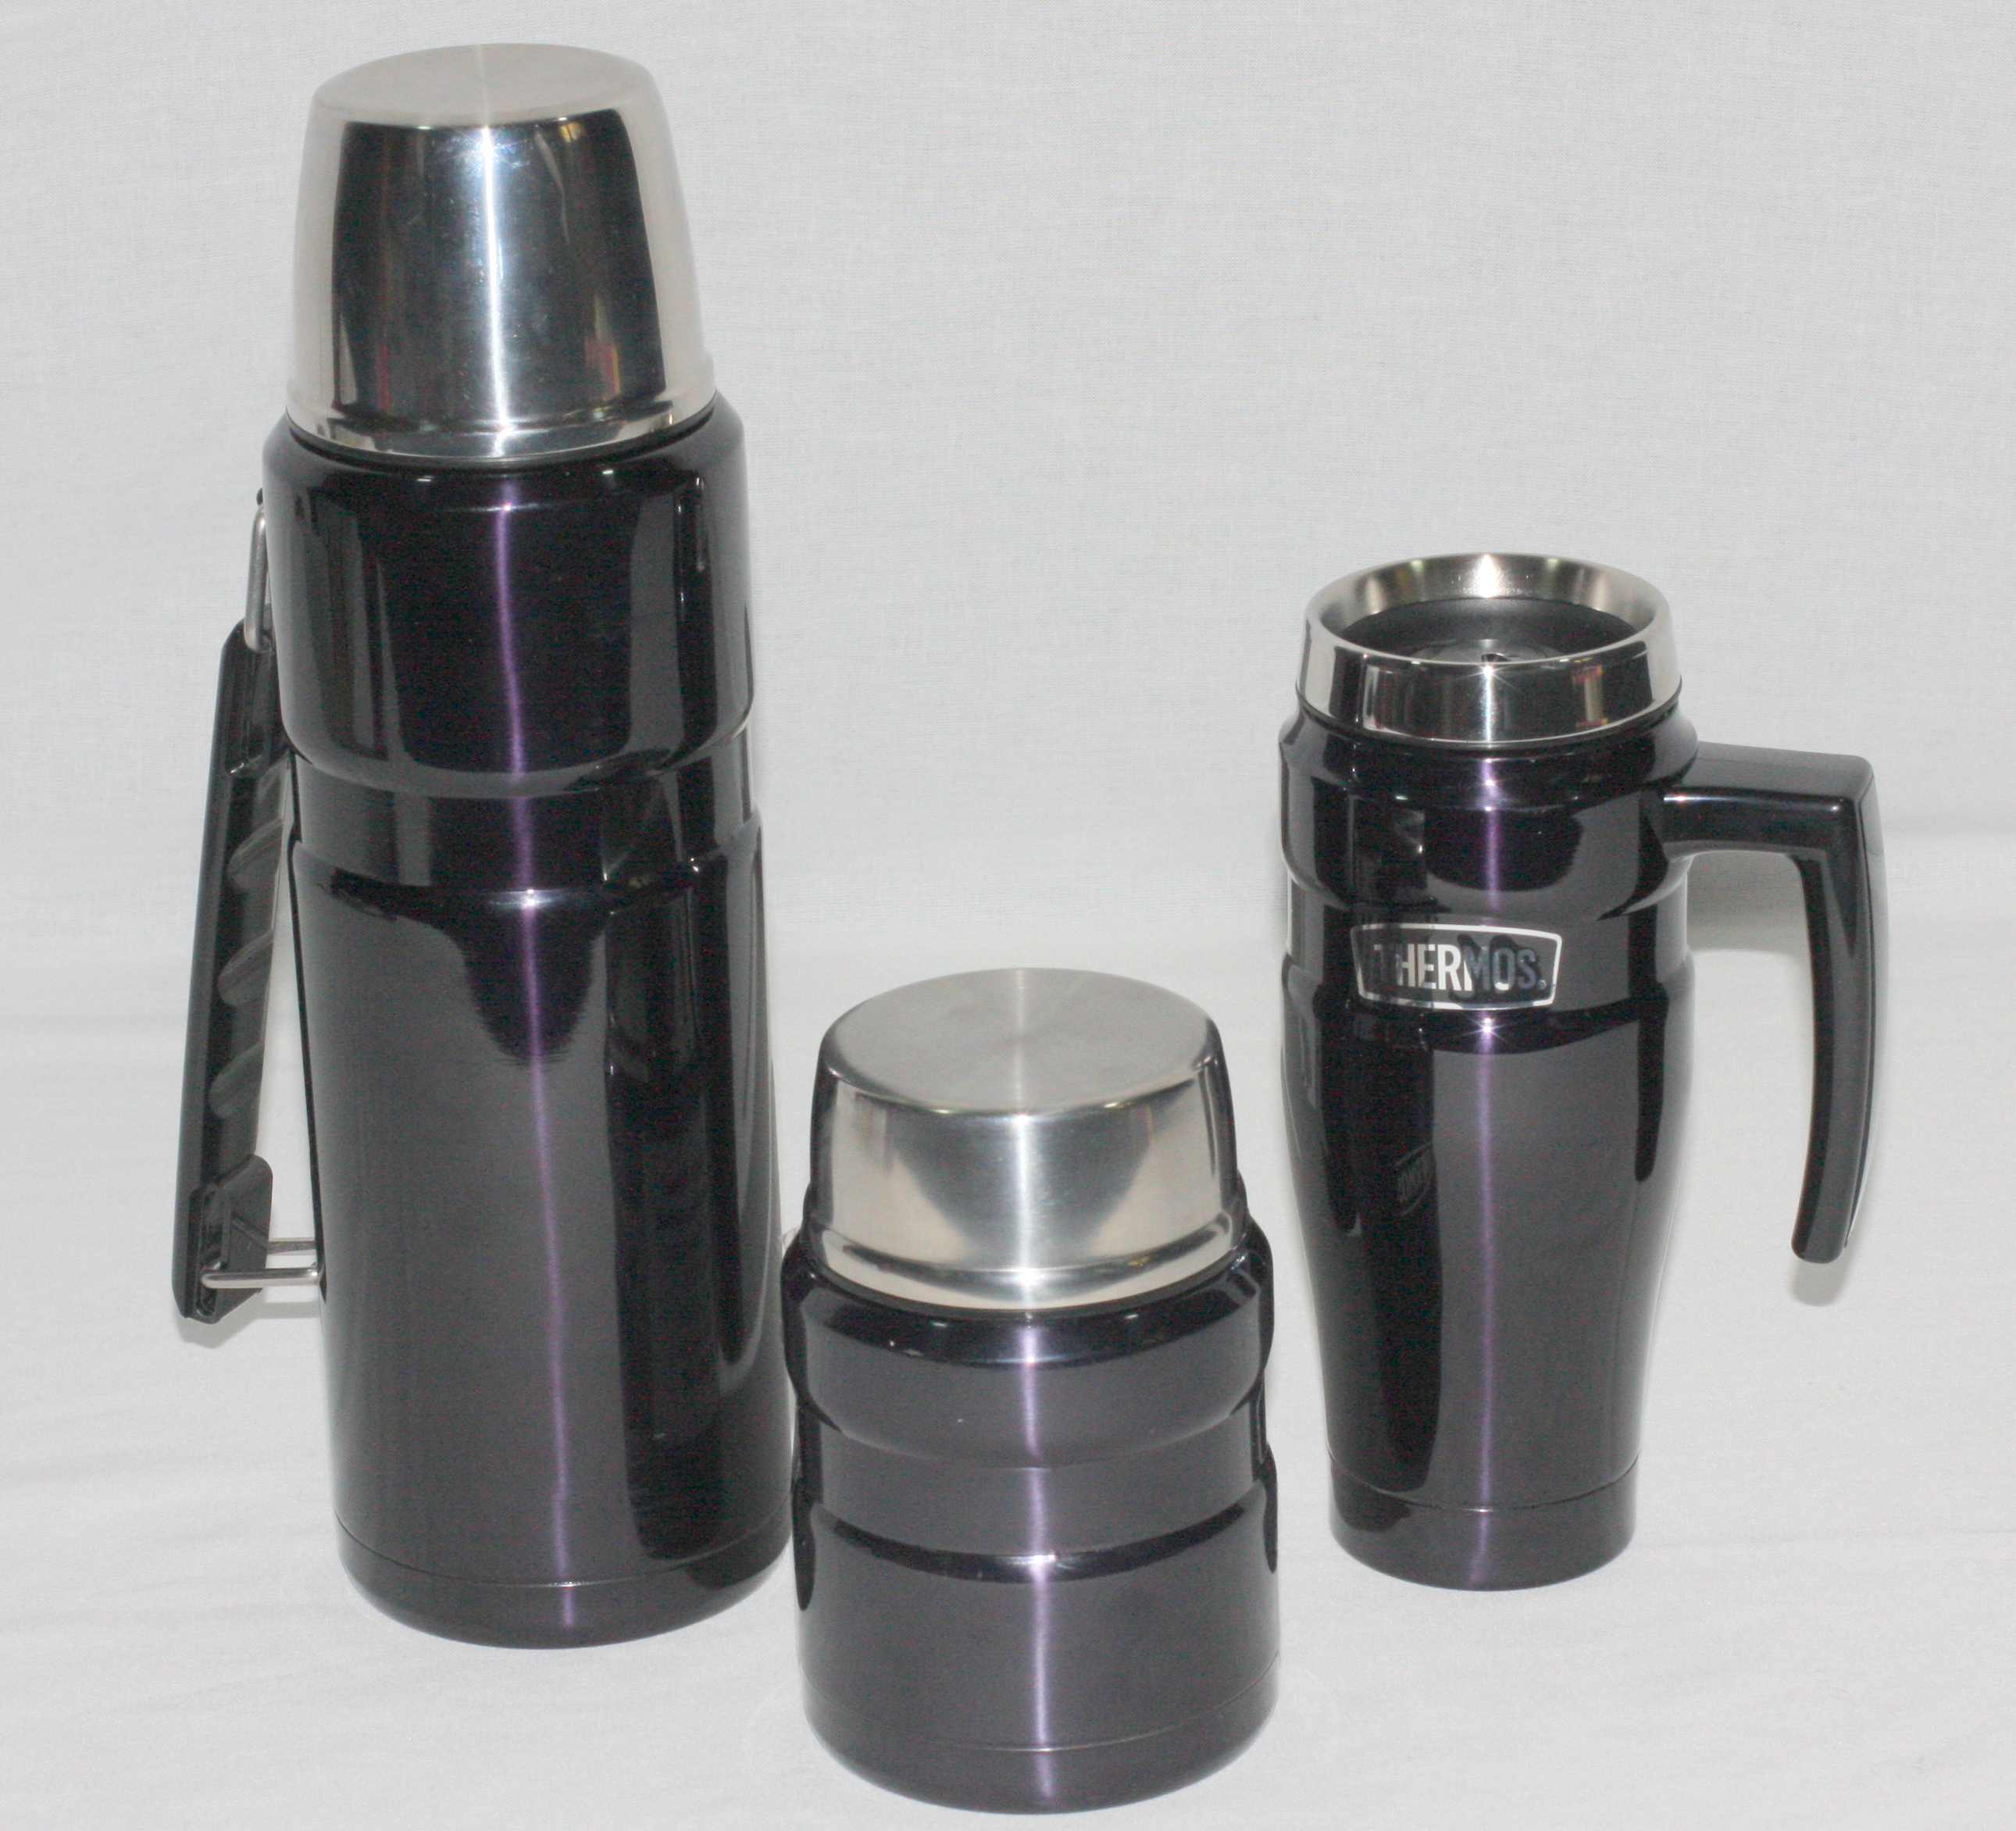 1.2 Litre Stainless Steel THERMOS flask Food jar and Travel Mug in Midnight Blue This is a special offer of a 1.2 litre Midnight Blue Thermos Flask plus a 500 ml spill proof travel mug and a 470 ml Food Jar with a stainless steel spoon. All of these products are stainless steel and vacuum insulated for maximum heat or cold retention for the longest period.